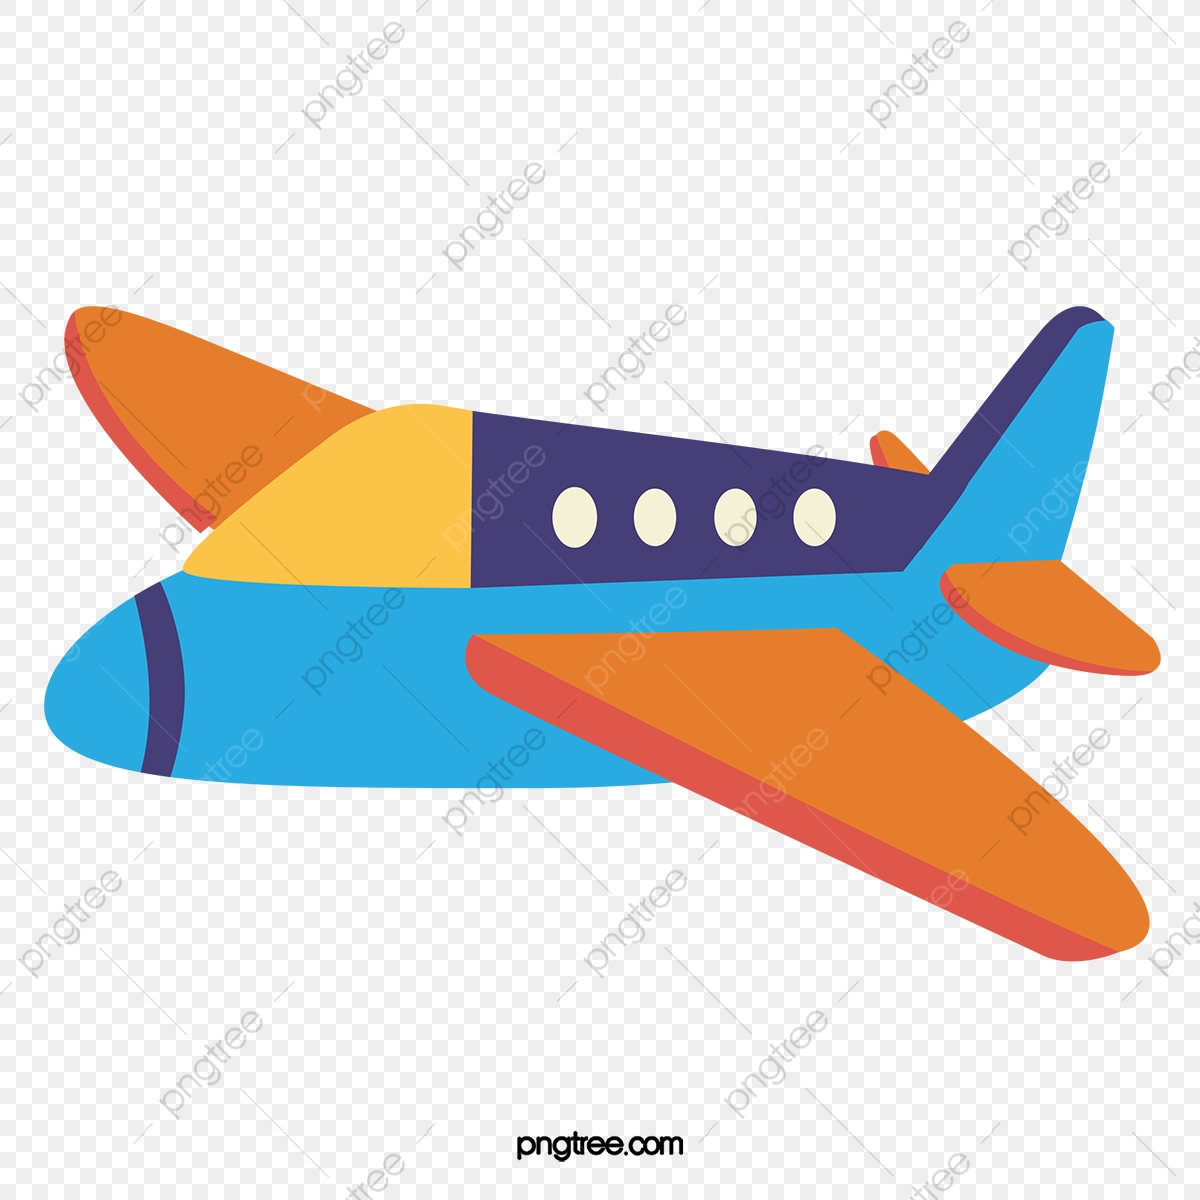 Toy Plane, Plane Vector, Toys, Aircraft PNG and Vector with.